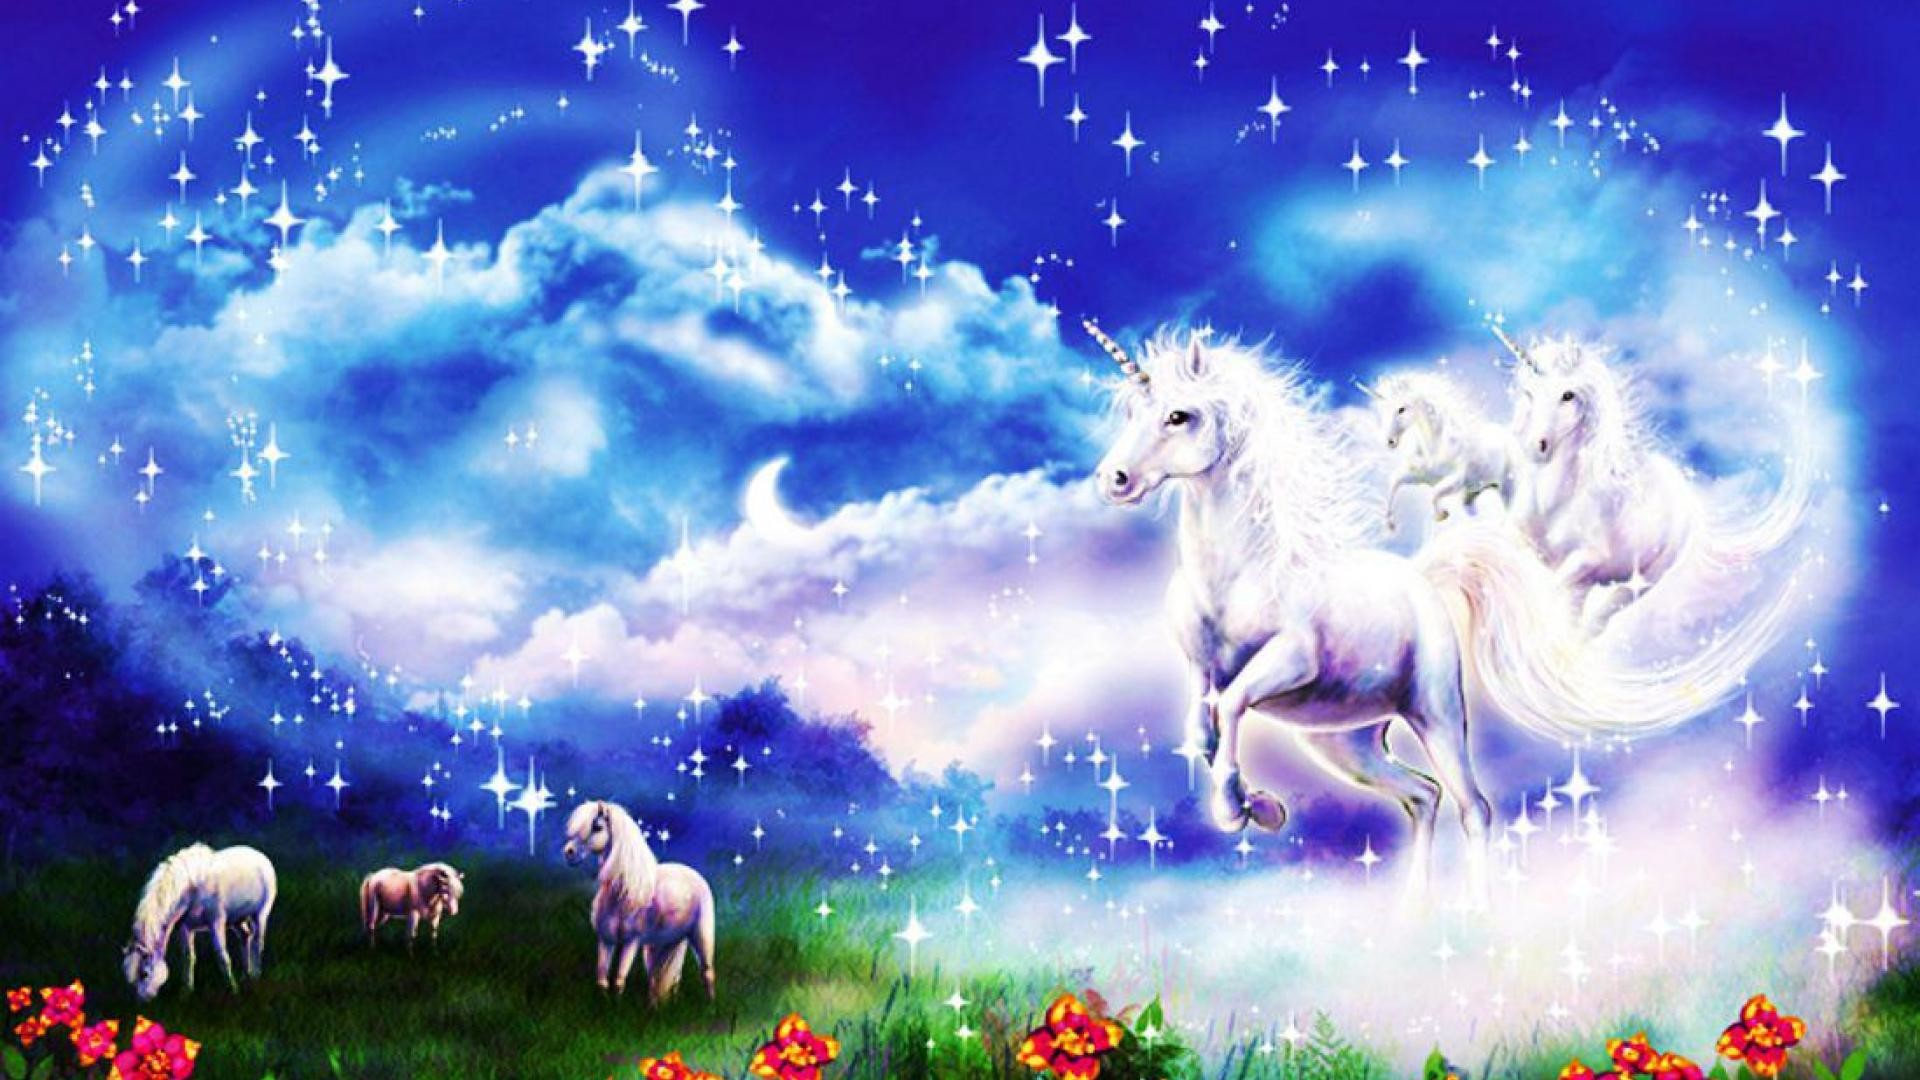 Spirit of unicorn – (#141404) – High Quality and Resolution Wallpapers .